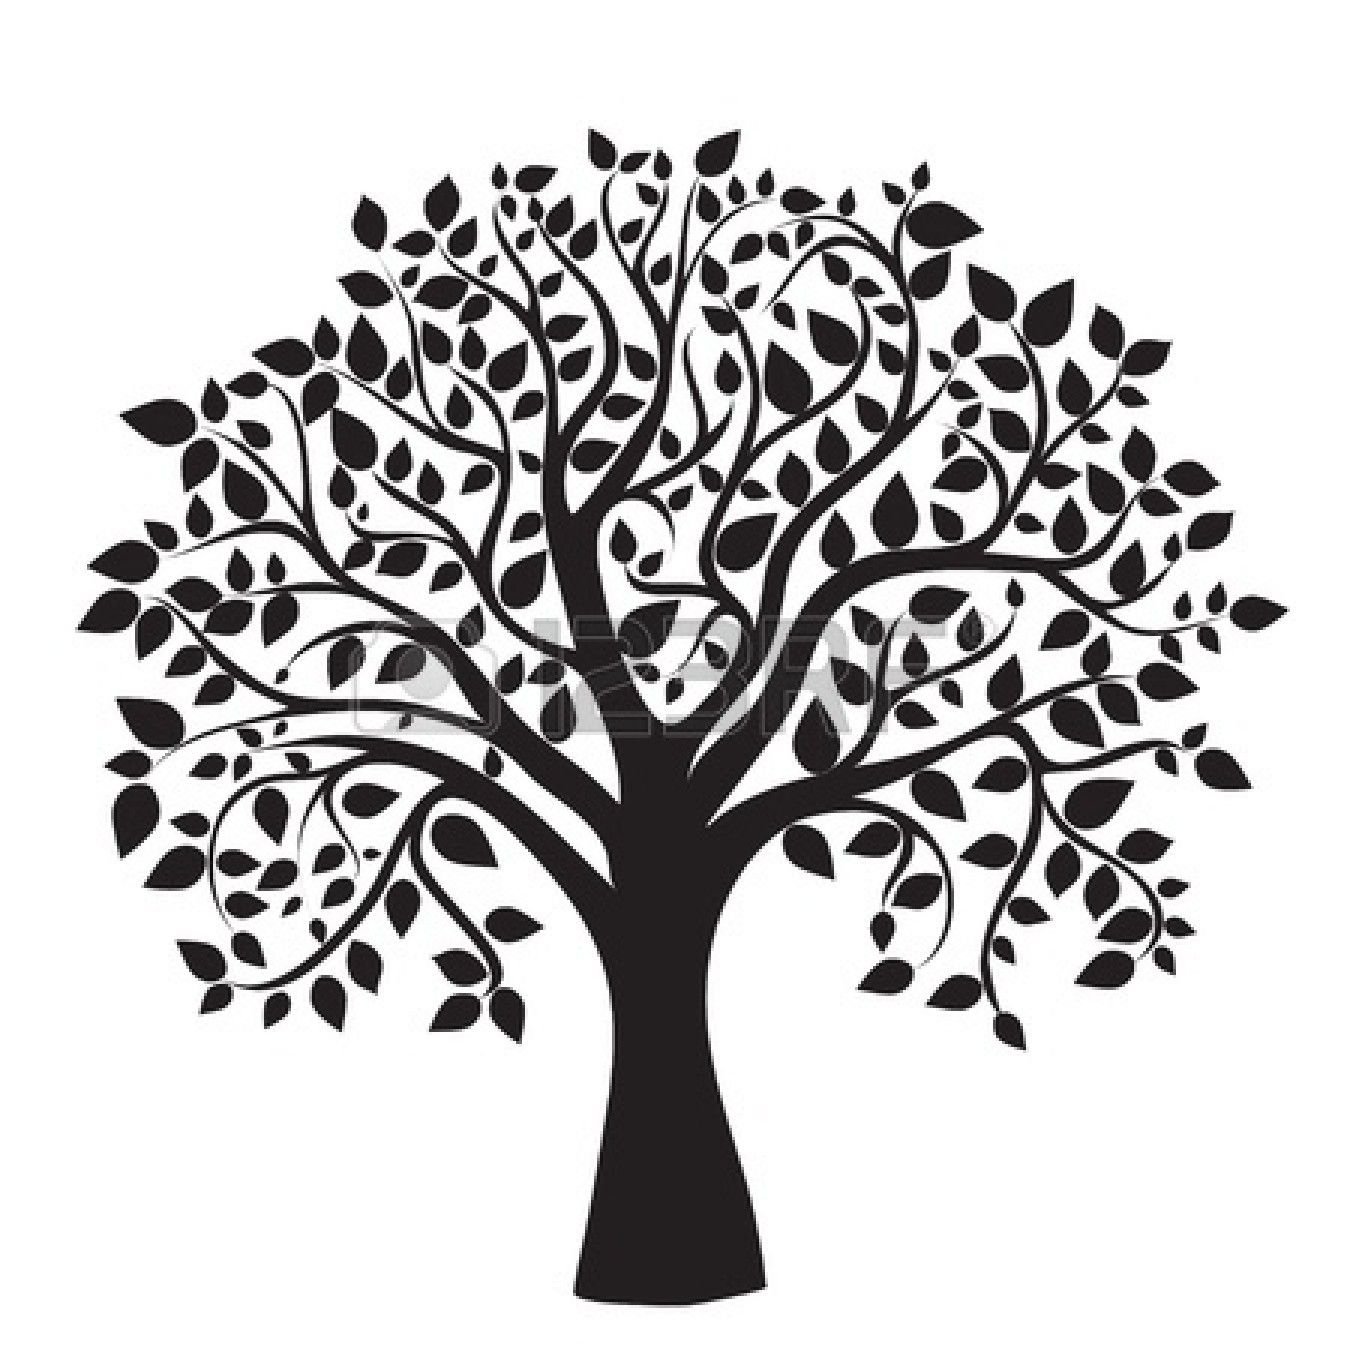 Tree Of Life Images Stock Pictures Royalty Free Tree Of